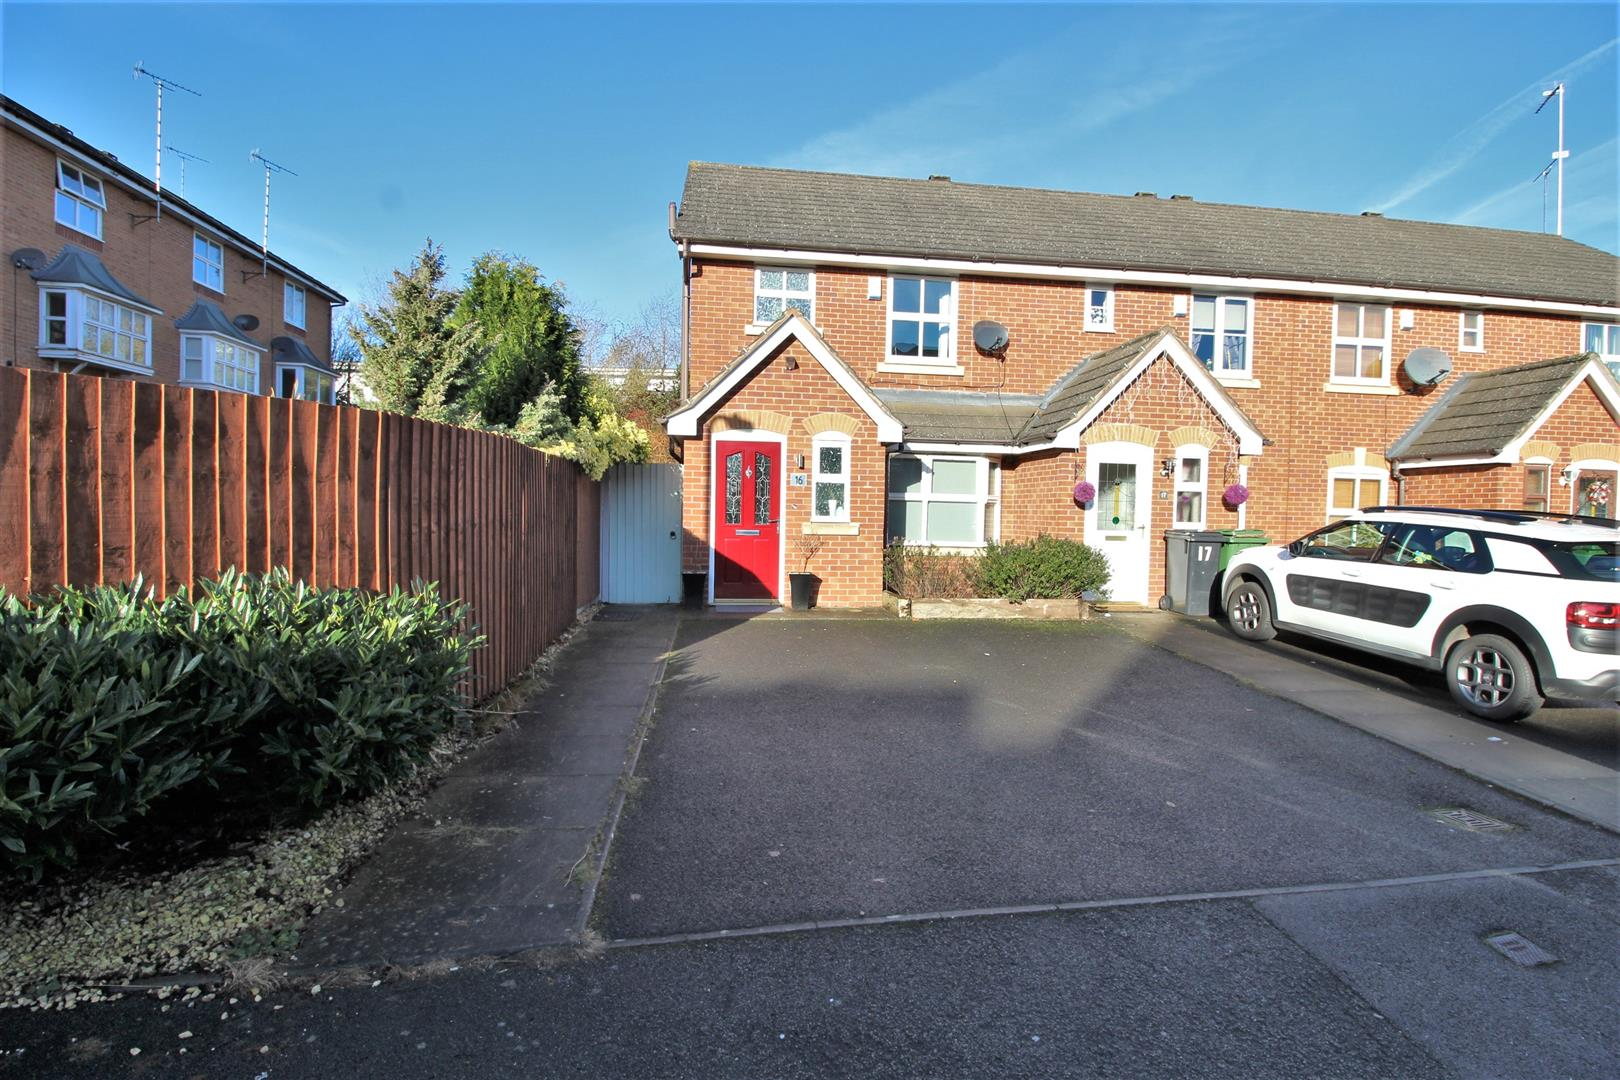 3 Bedrooms End Of Terrace House for sale in Honeychurch Close, Redditch